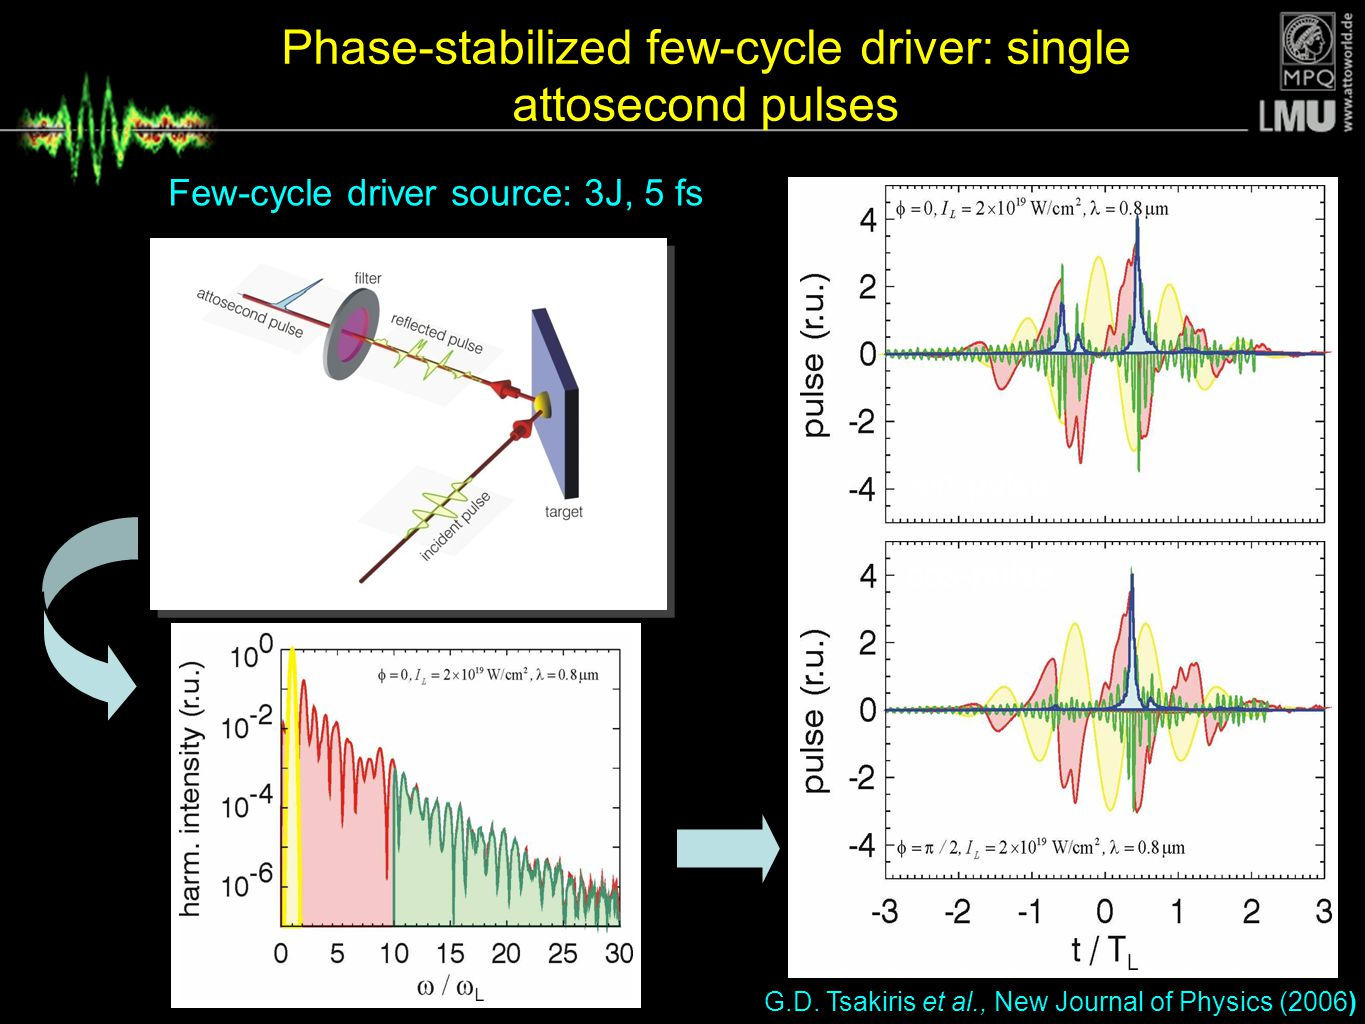 Phase-stabilized few-cycle driver: single attosecond pulses